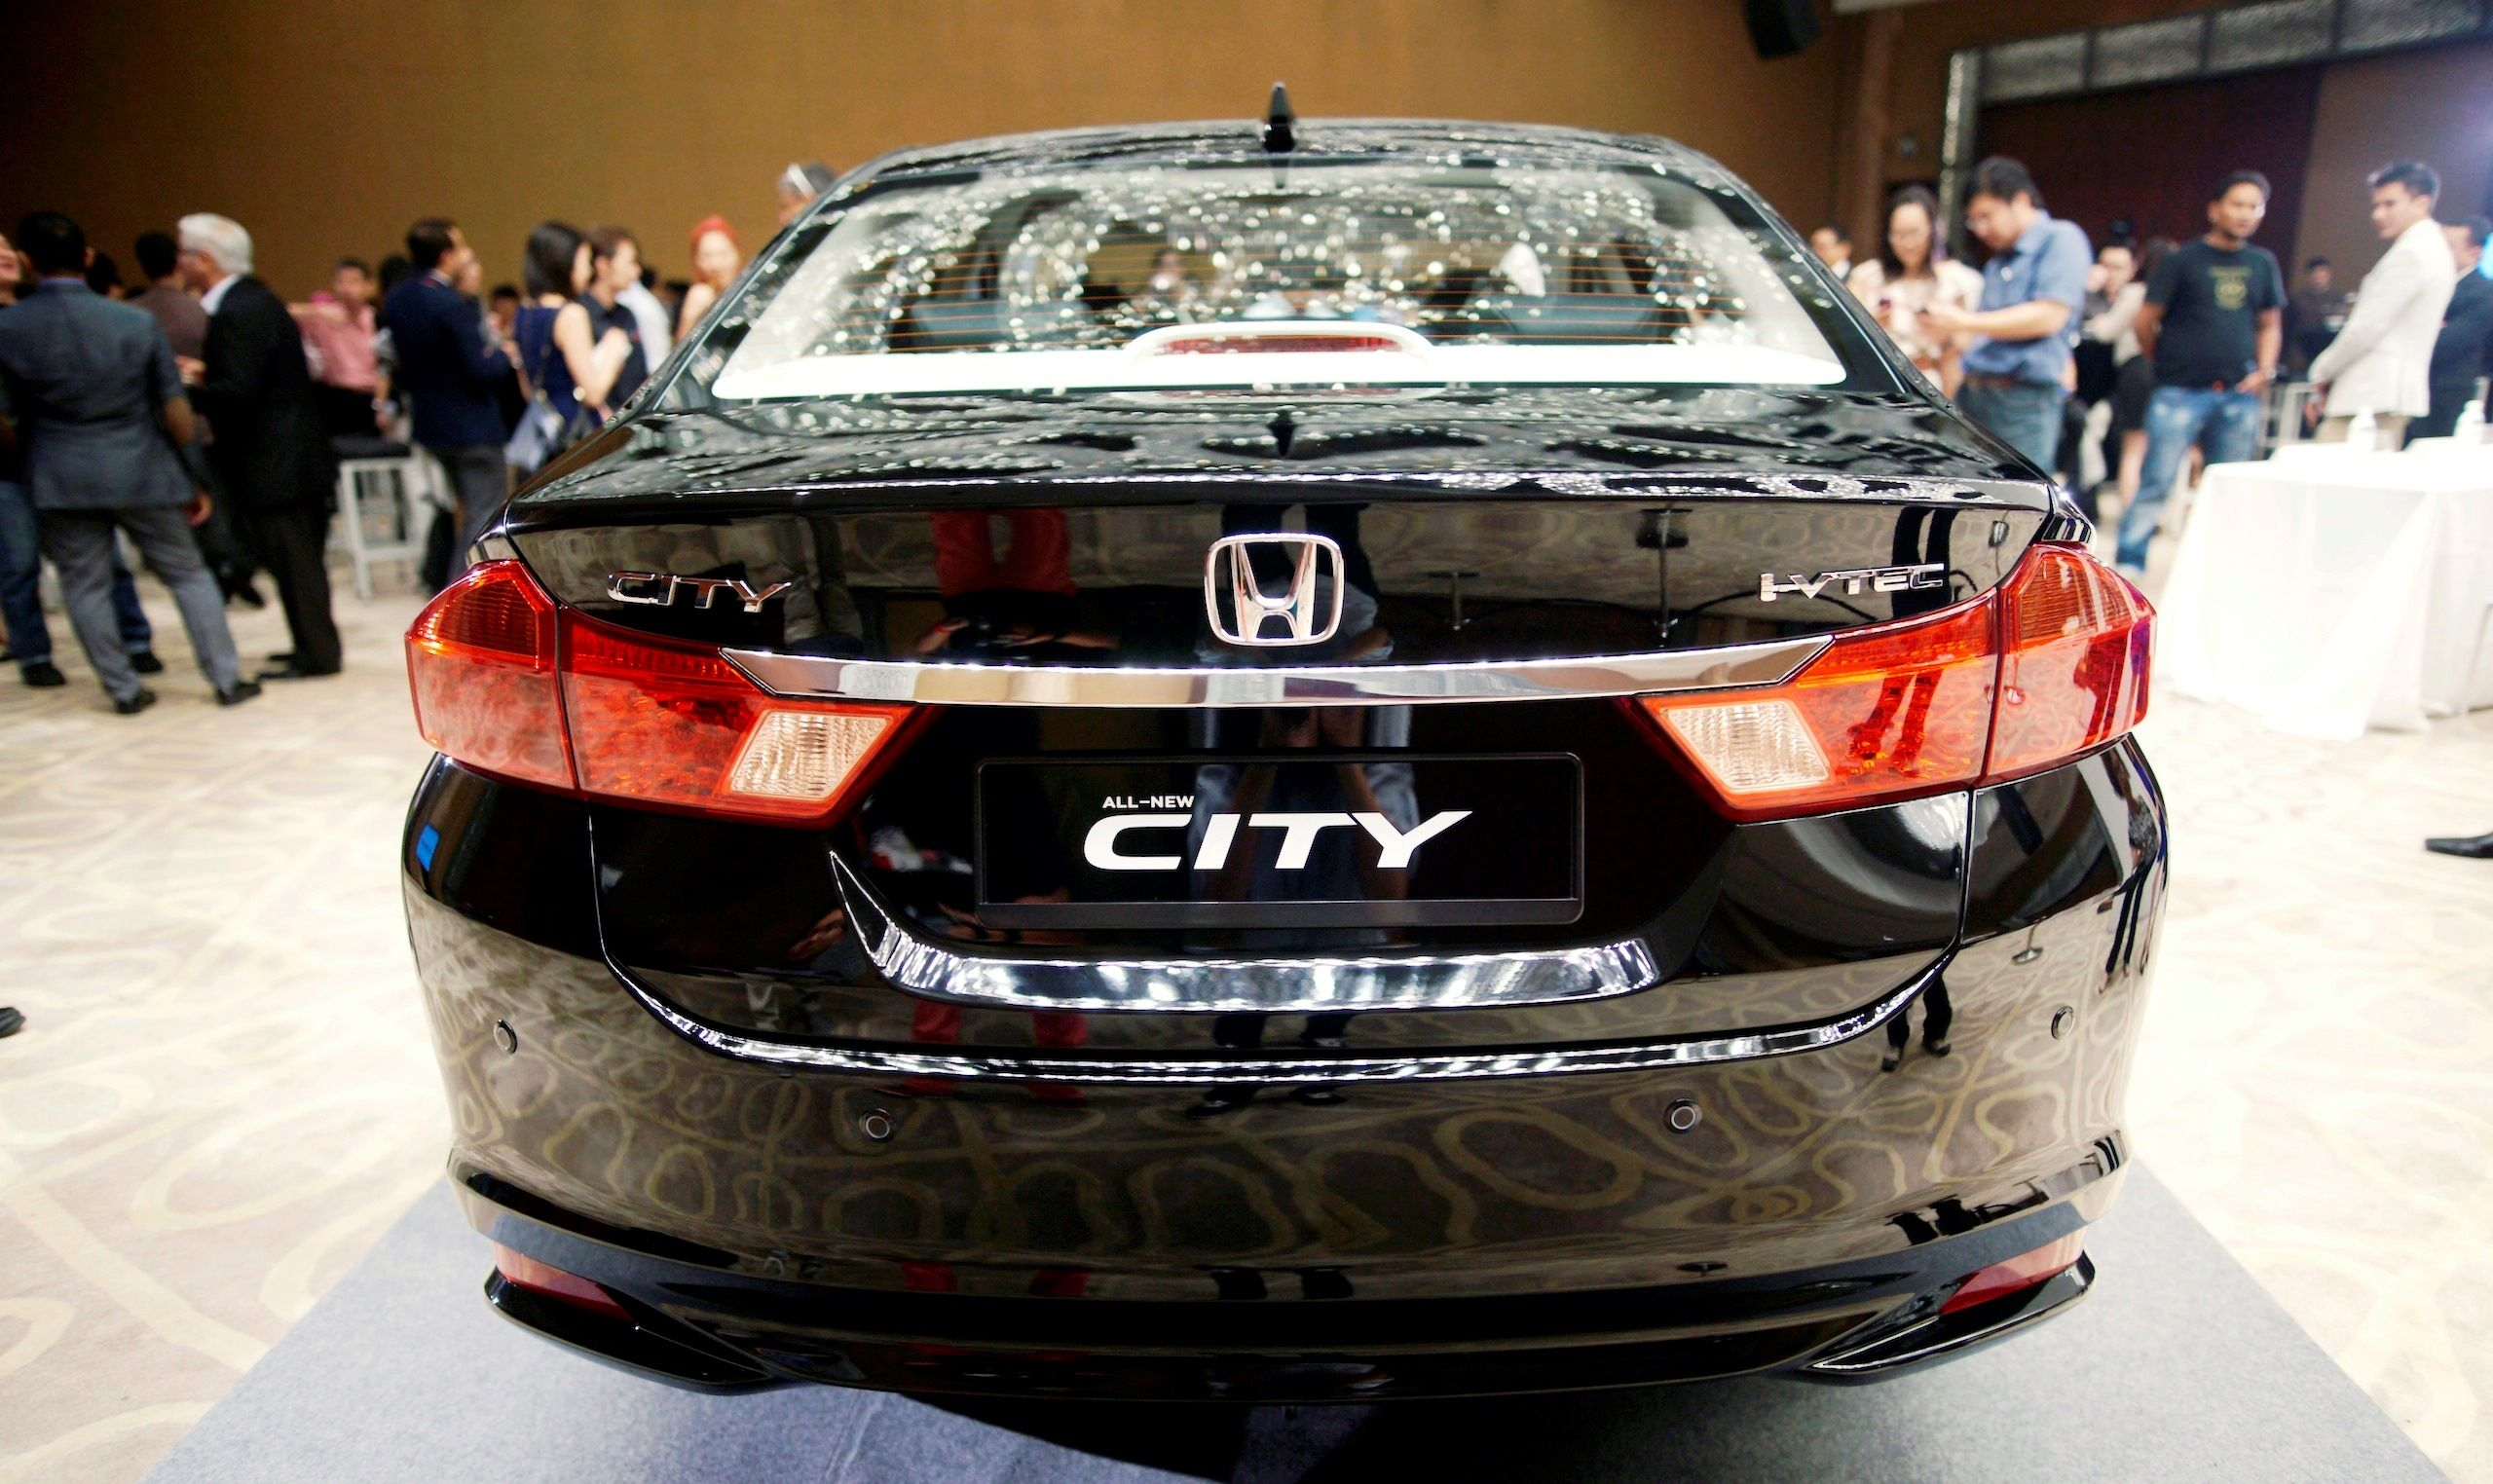 Honda city 2014 model in black color